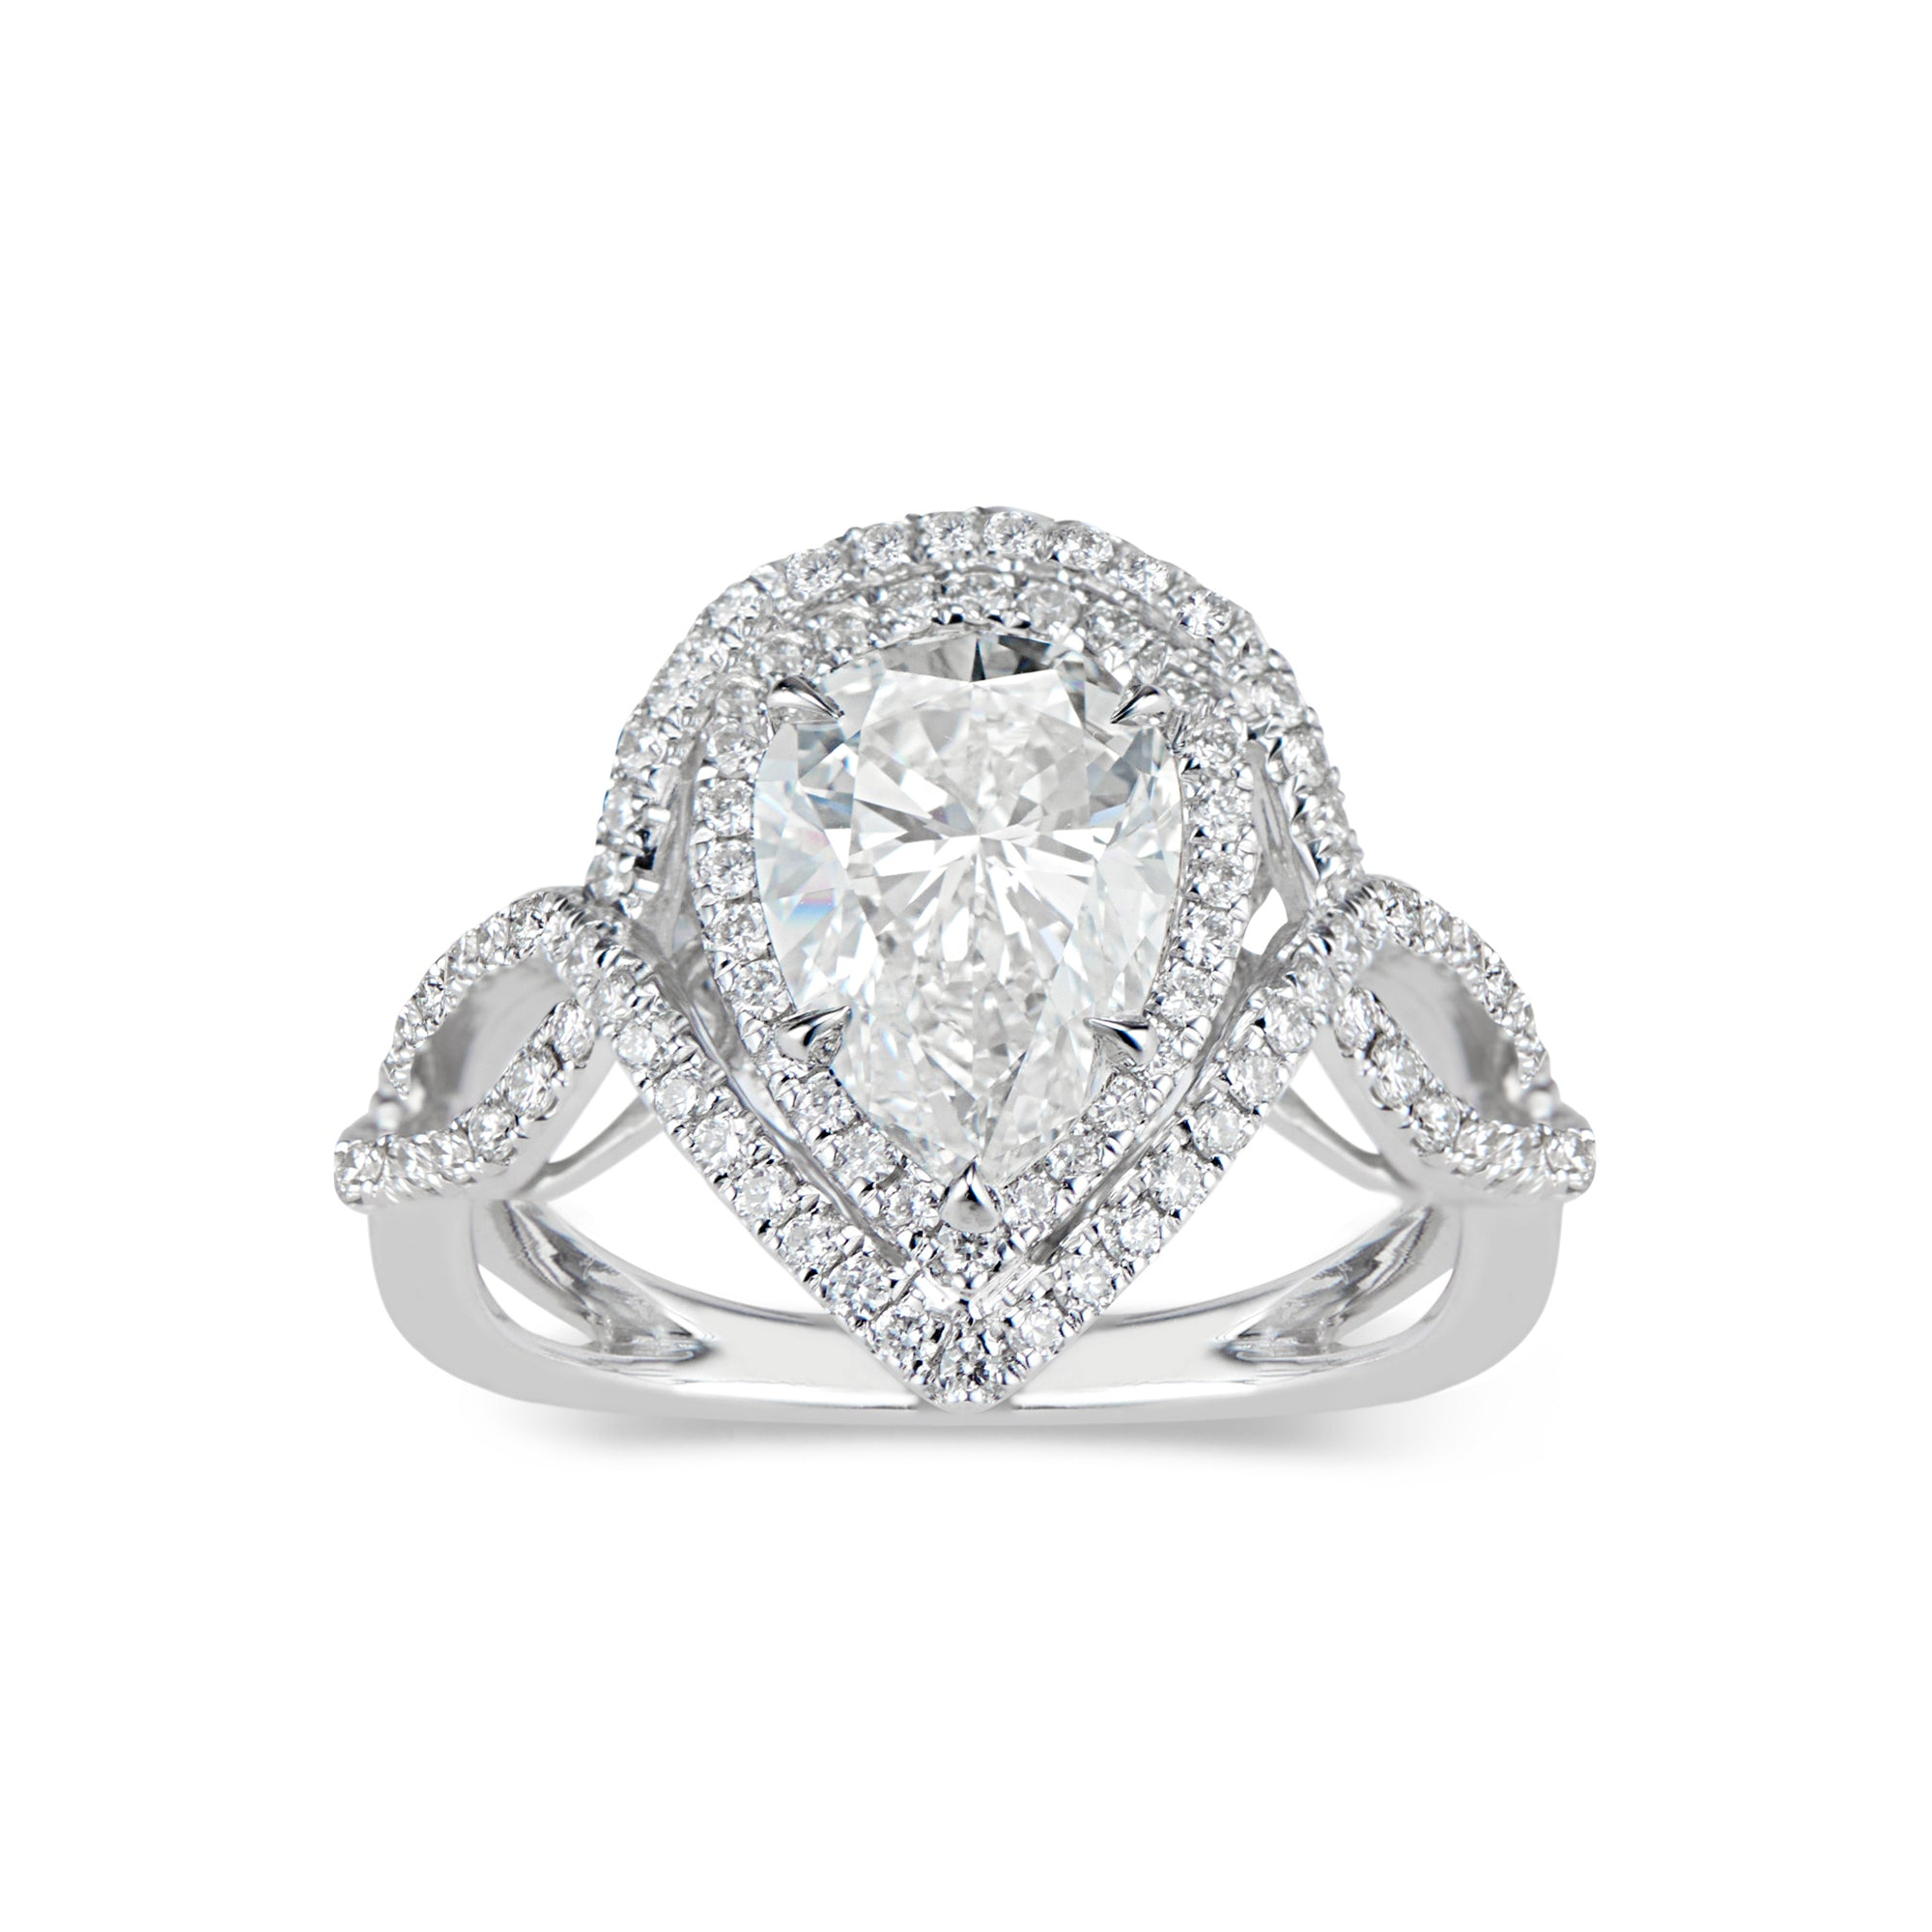 Pear Double Halo Diamond Engagement Ring with Twisted Shank